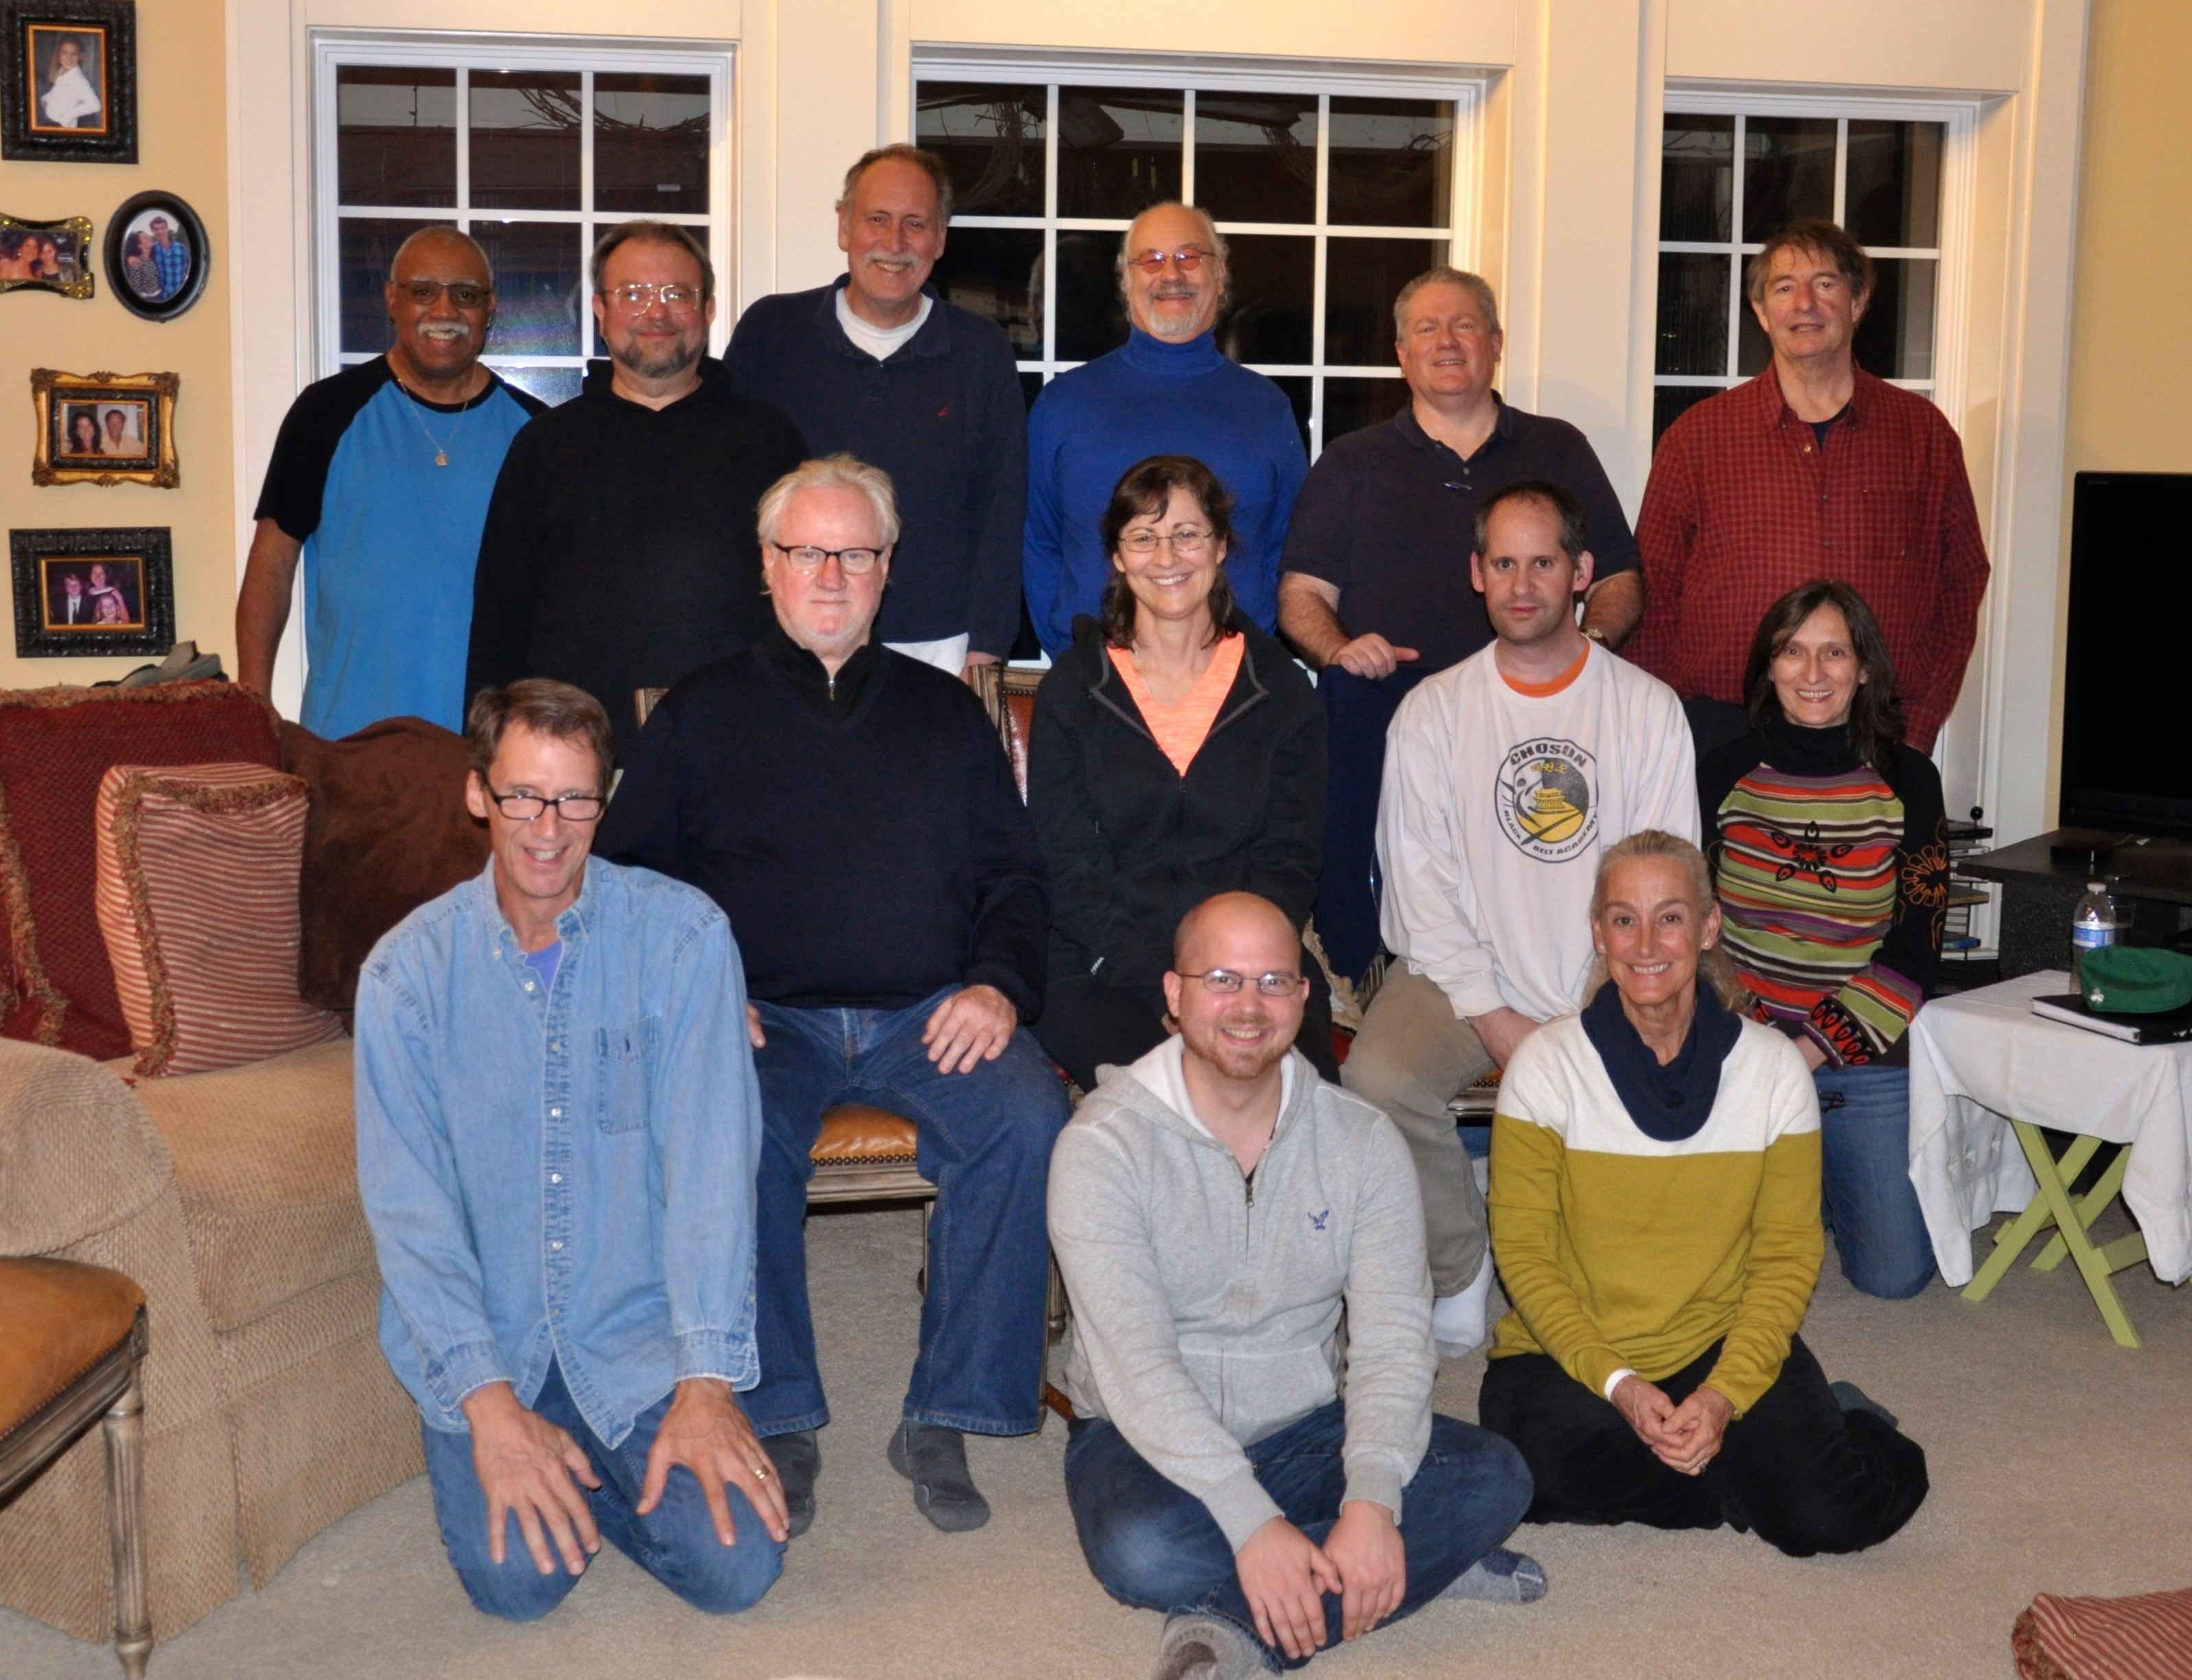 Santi Maha Sangha Base Level Retreat with Jim Valby in Atlanta, Georgia - December 6-9, 2014